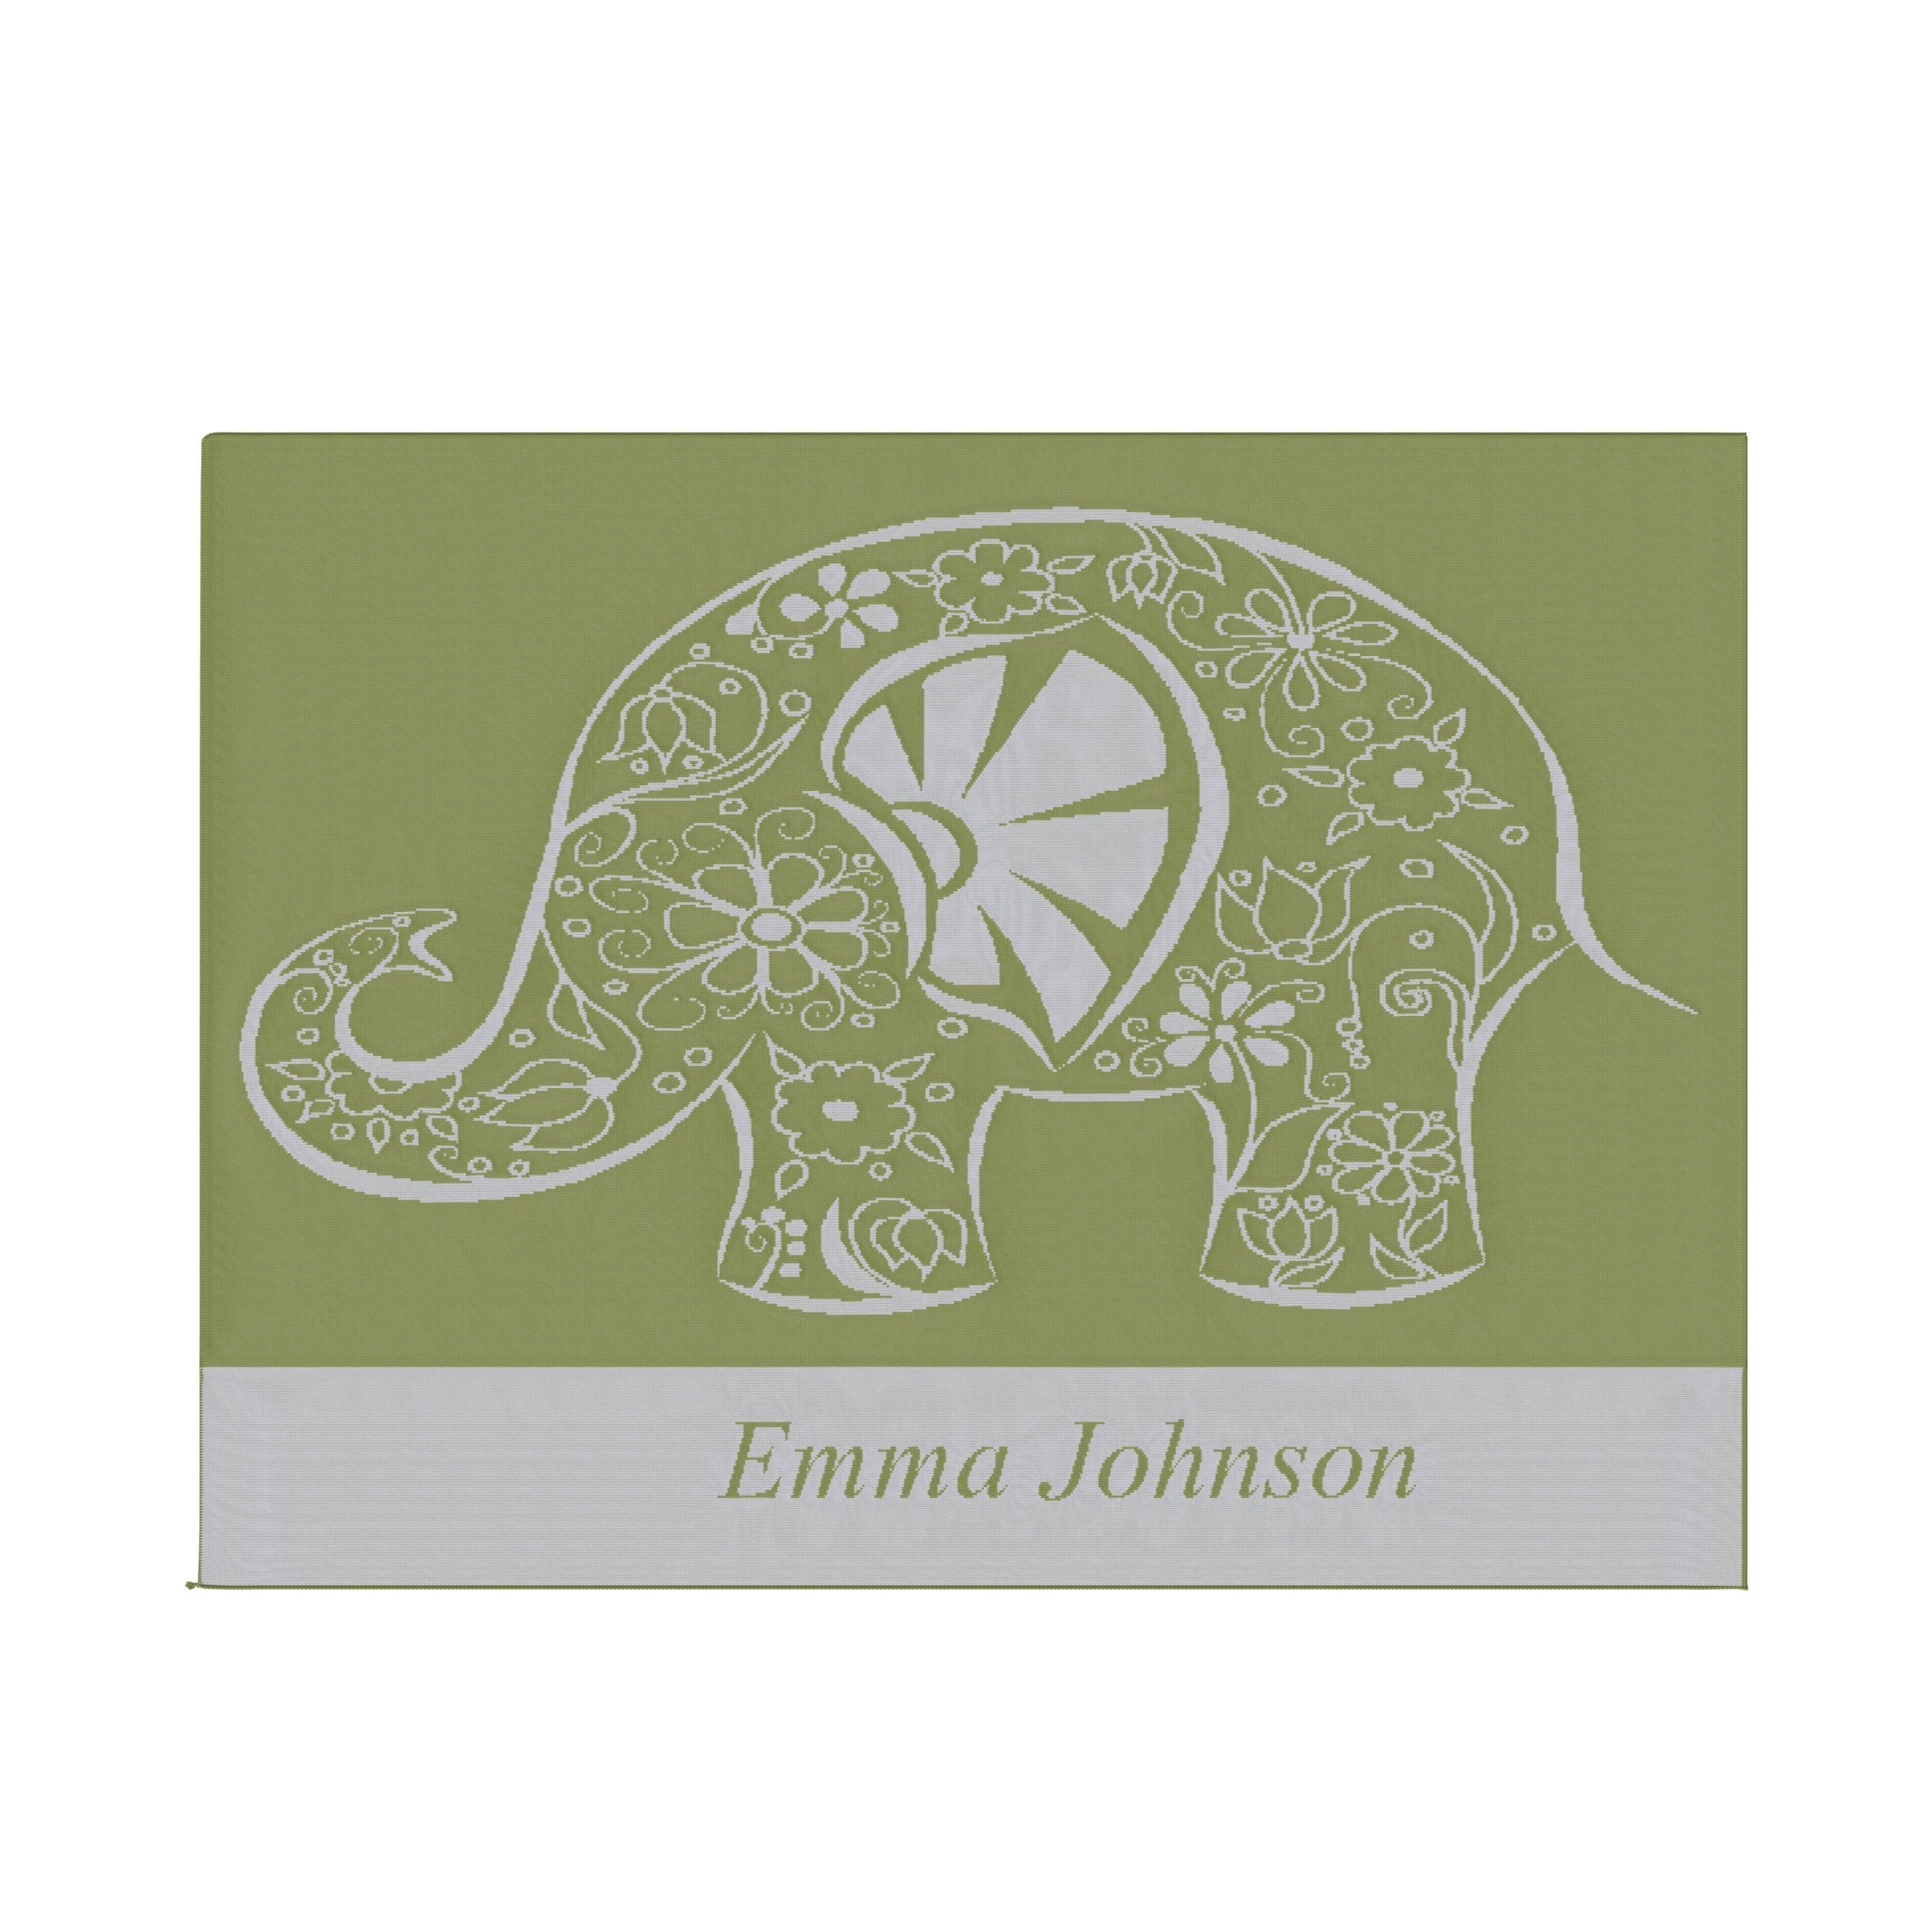 Emji Luxury Knit Baby Blanket with Fancy Elephant, Customized Name Stroller Blanket, 100% Cashwool Merino Wool, Fern Green and White, Made in USA